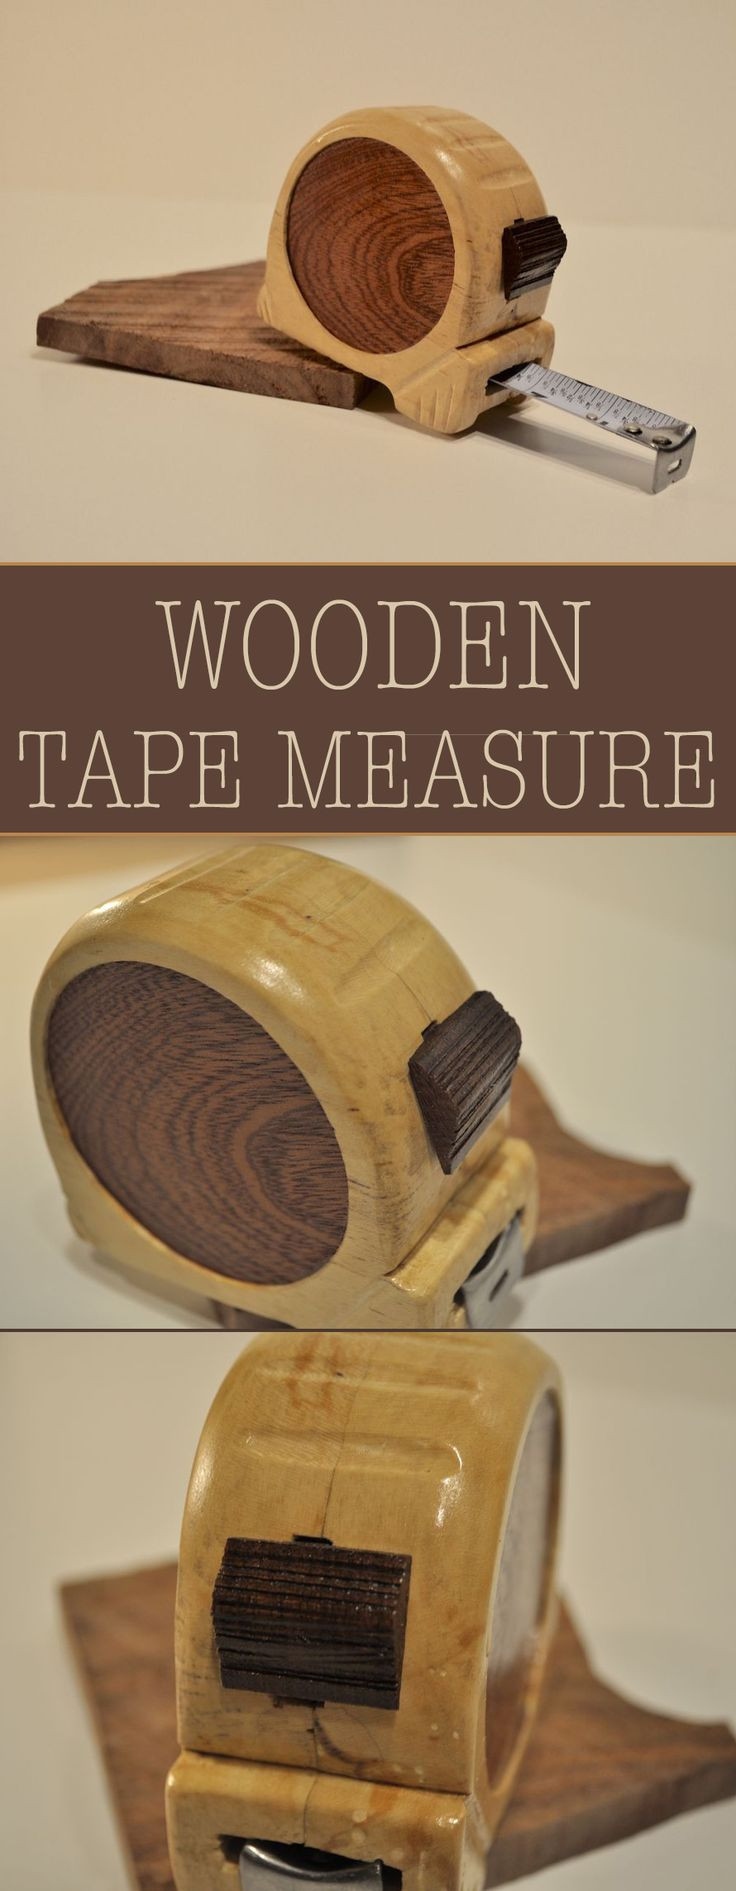 Best ideas about Woodworker Gift Ideas . Save or Pin 873 best images about Woodworking on Pinterest Now.